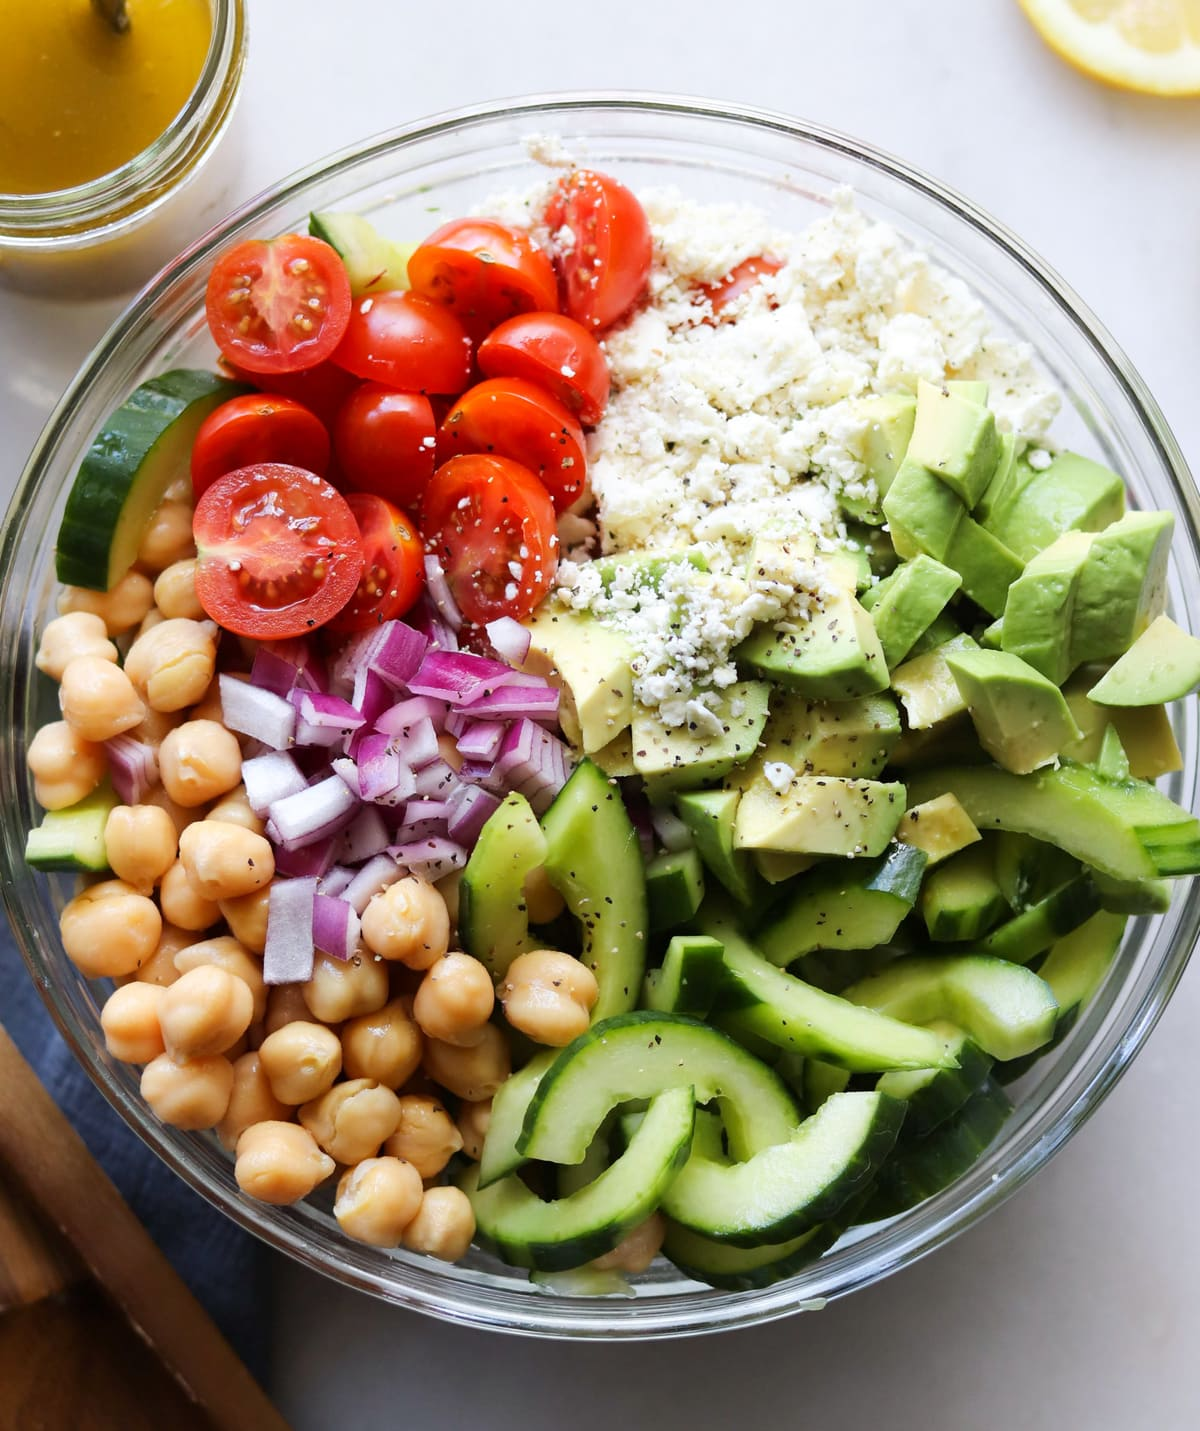 Top down of the salad ingredients arranged in a large bowl, not yet tossed together.